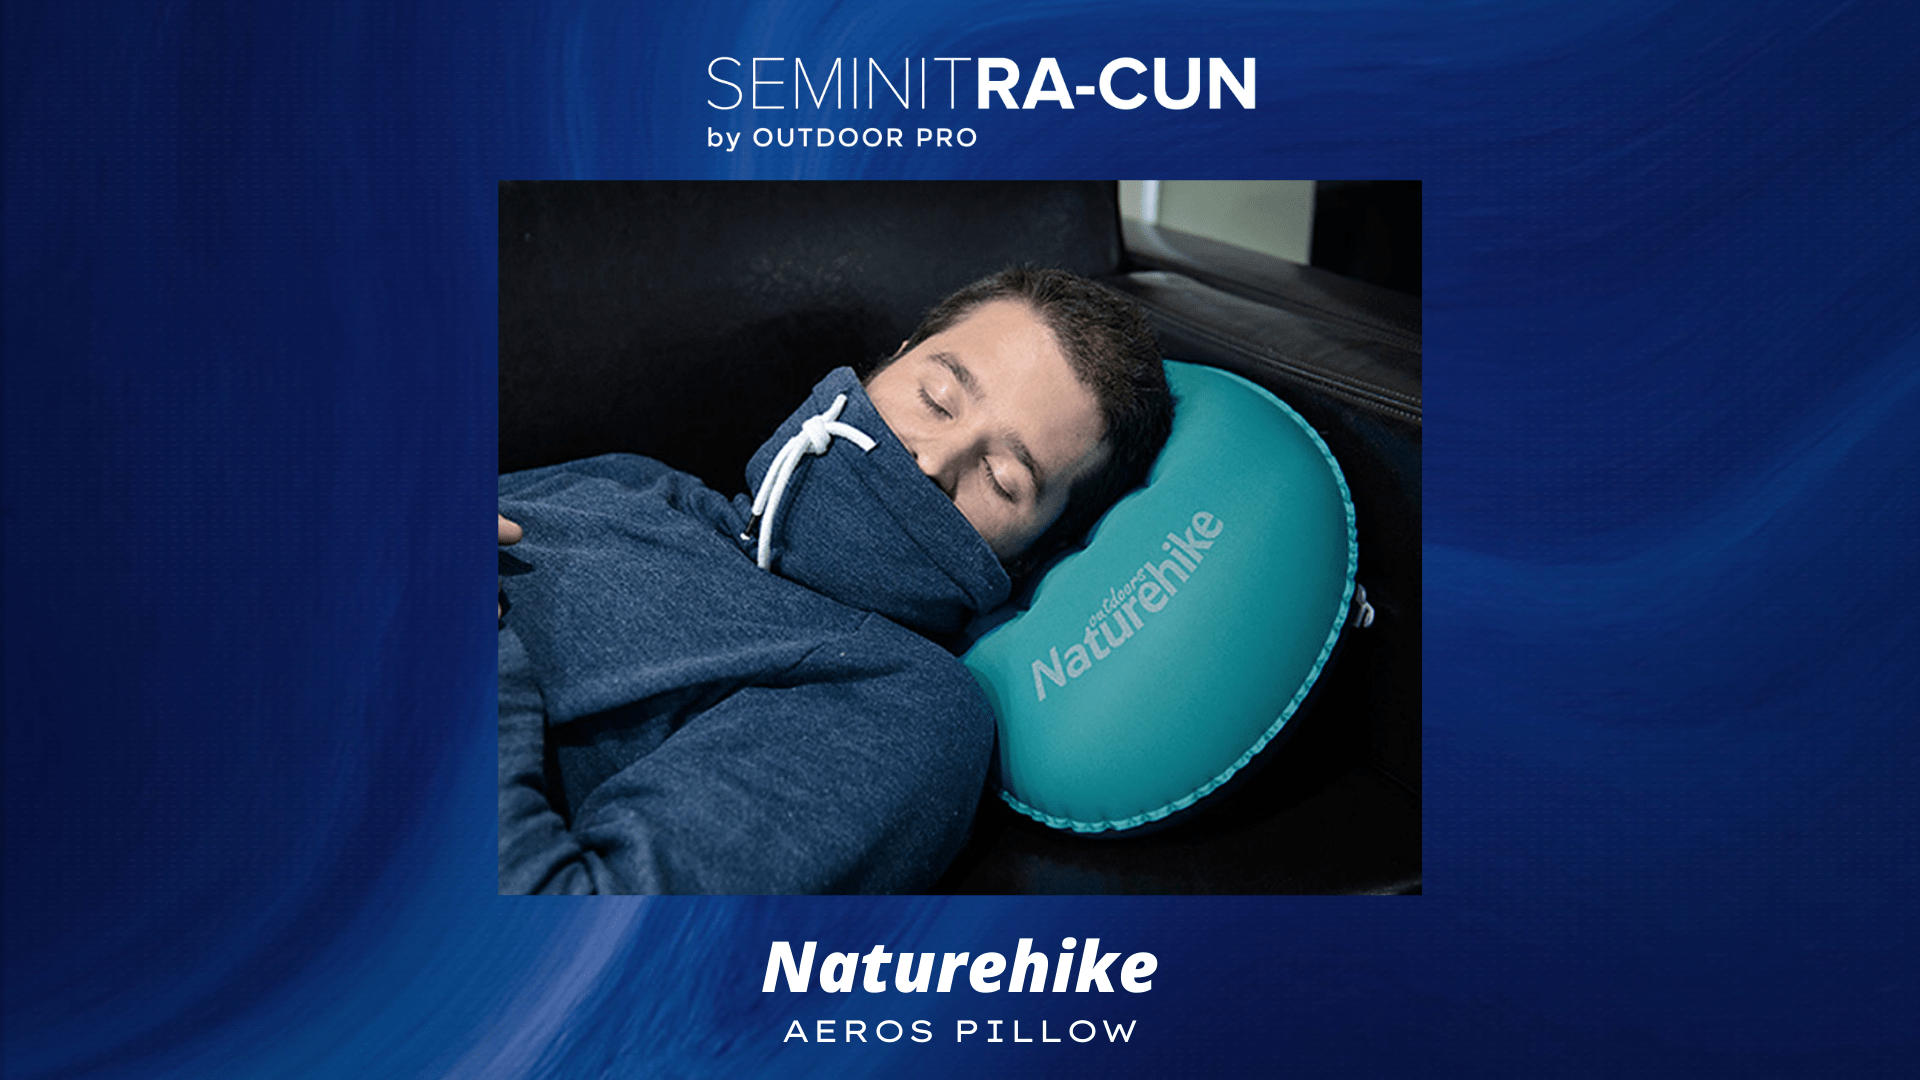 𝗦𝗘𝗠𝗜𝗡𝗜𝗧 𝗥𝗔-𝗖𝗨𝗡 : NATUREHIKE AEROS PILLOW